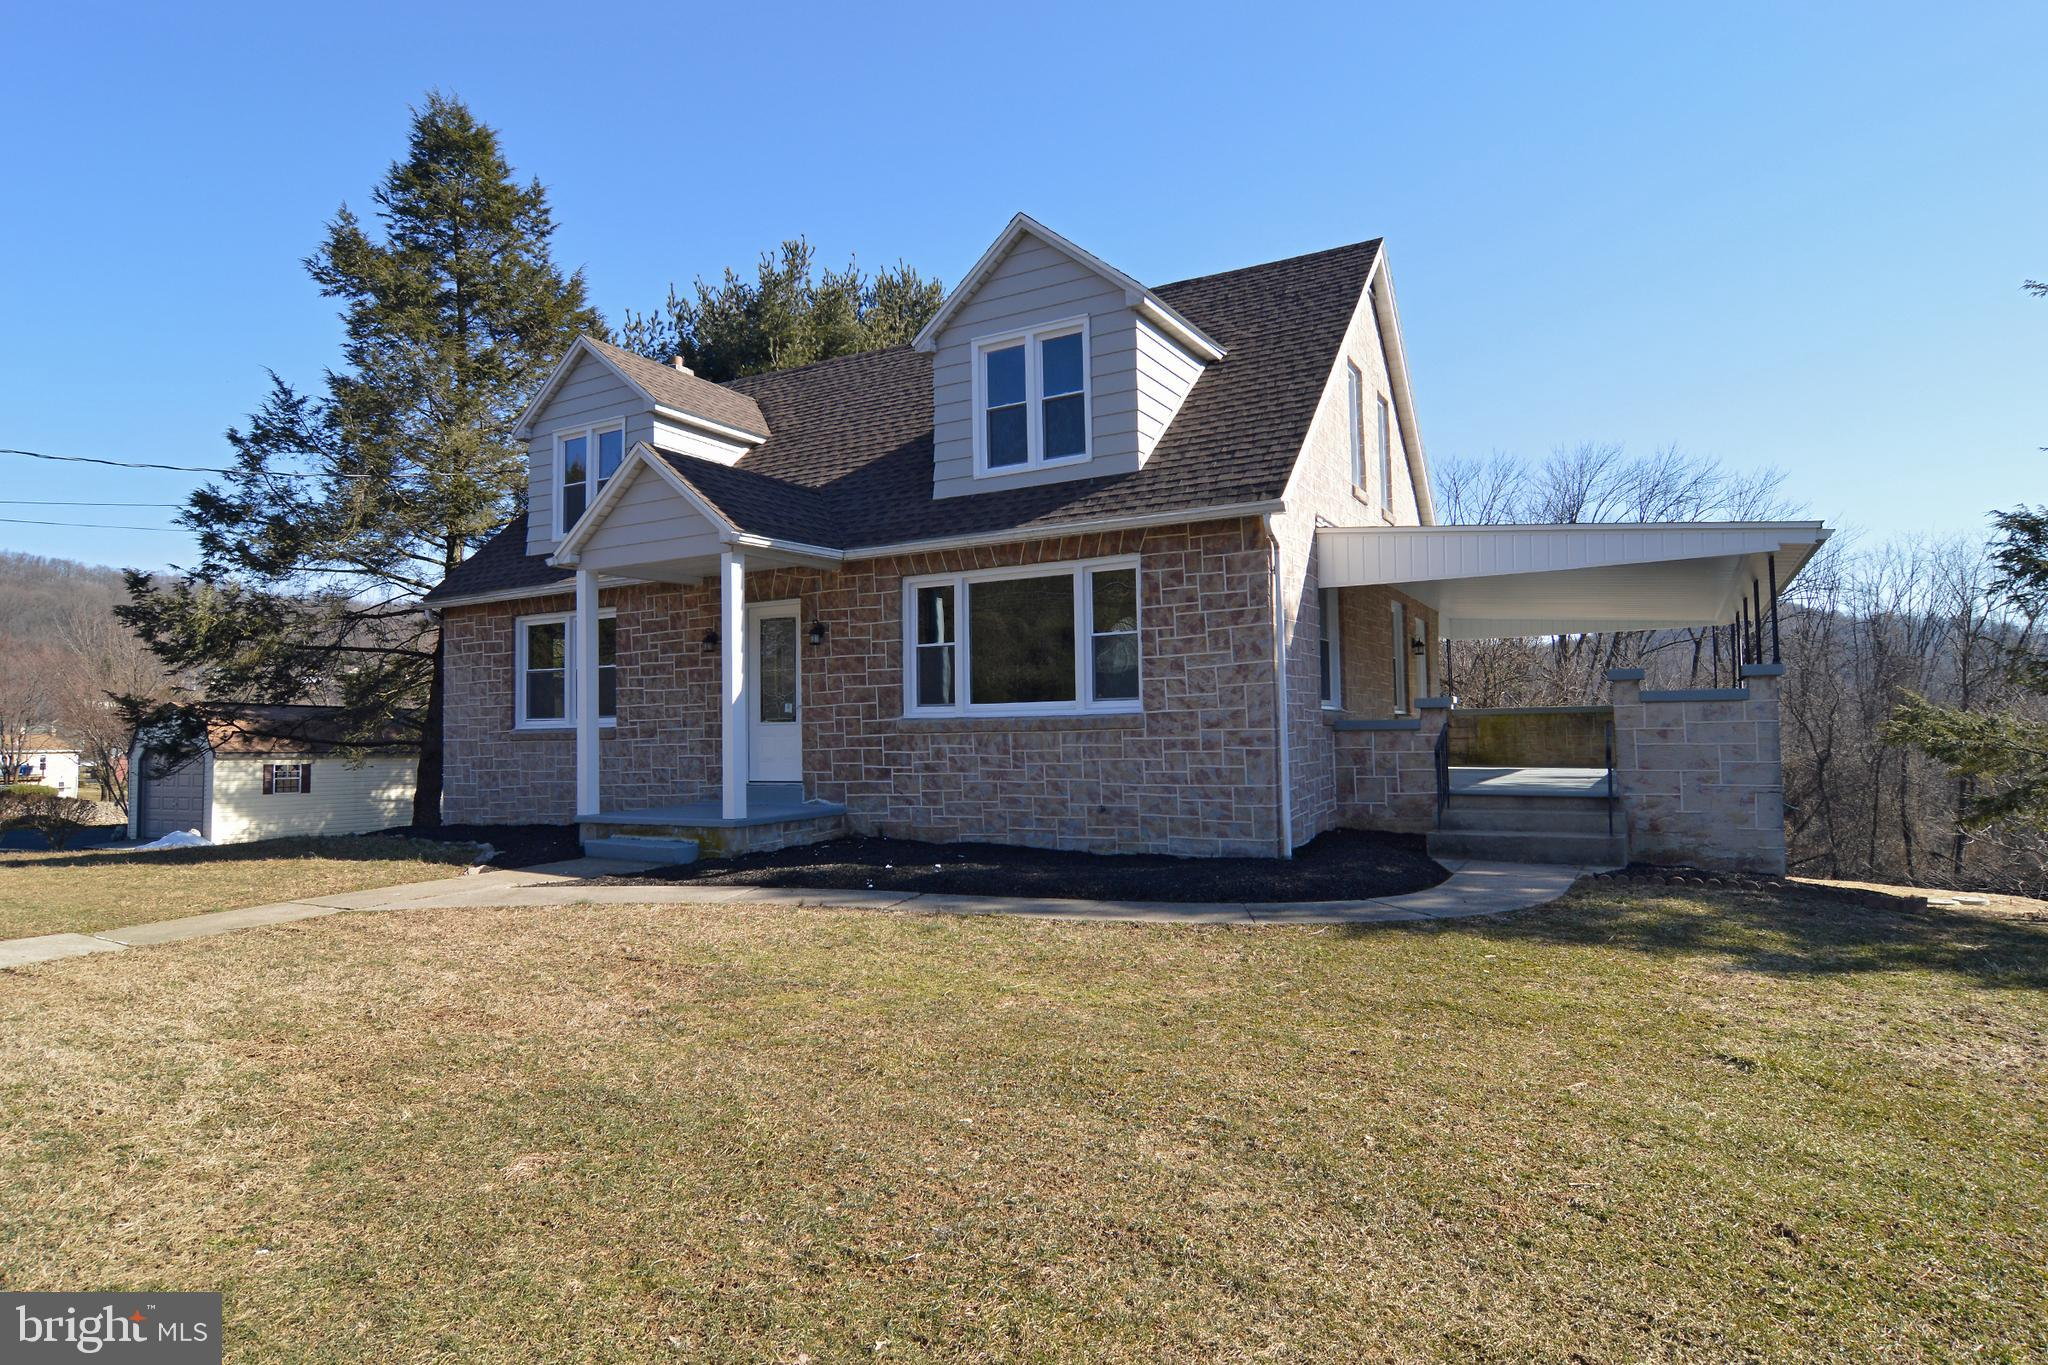 2219 HERB ROAD, TEMPLE, PA 19560